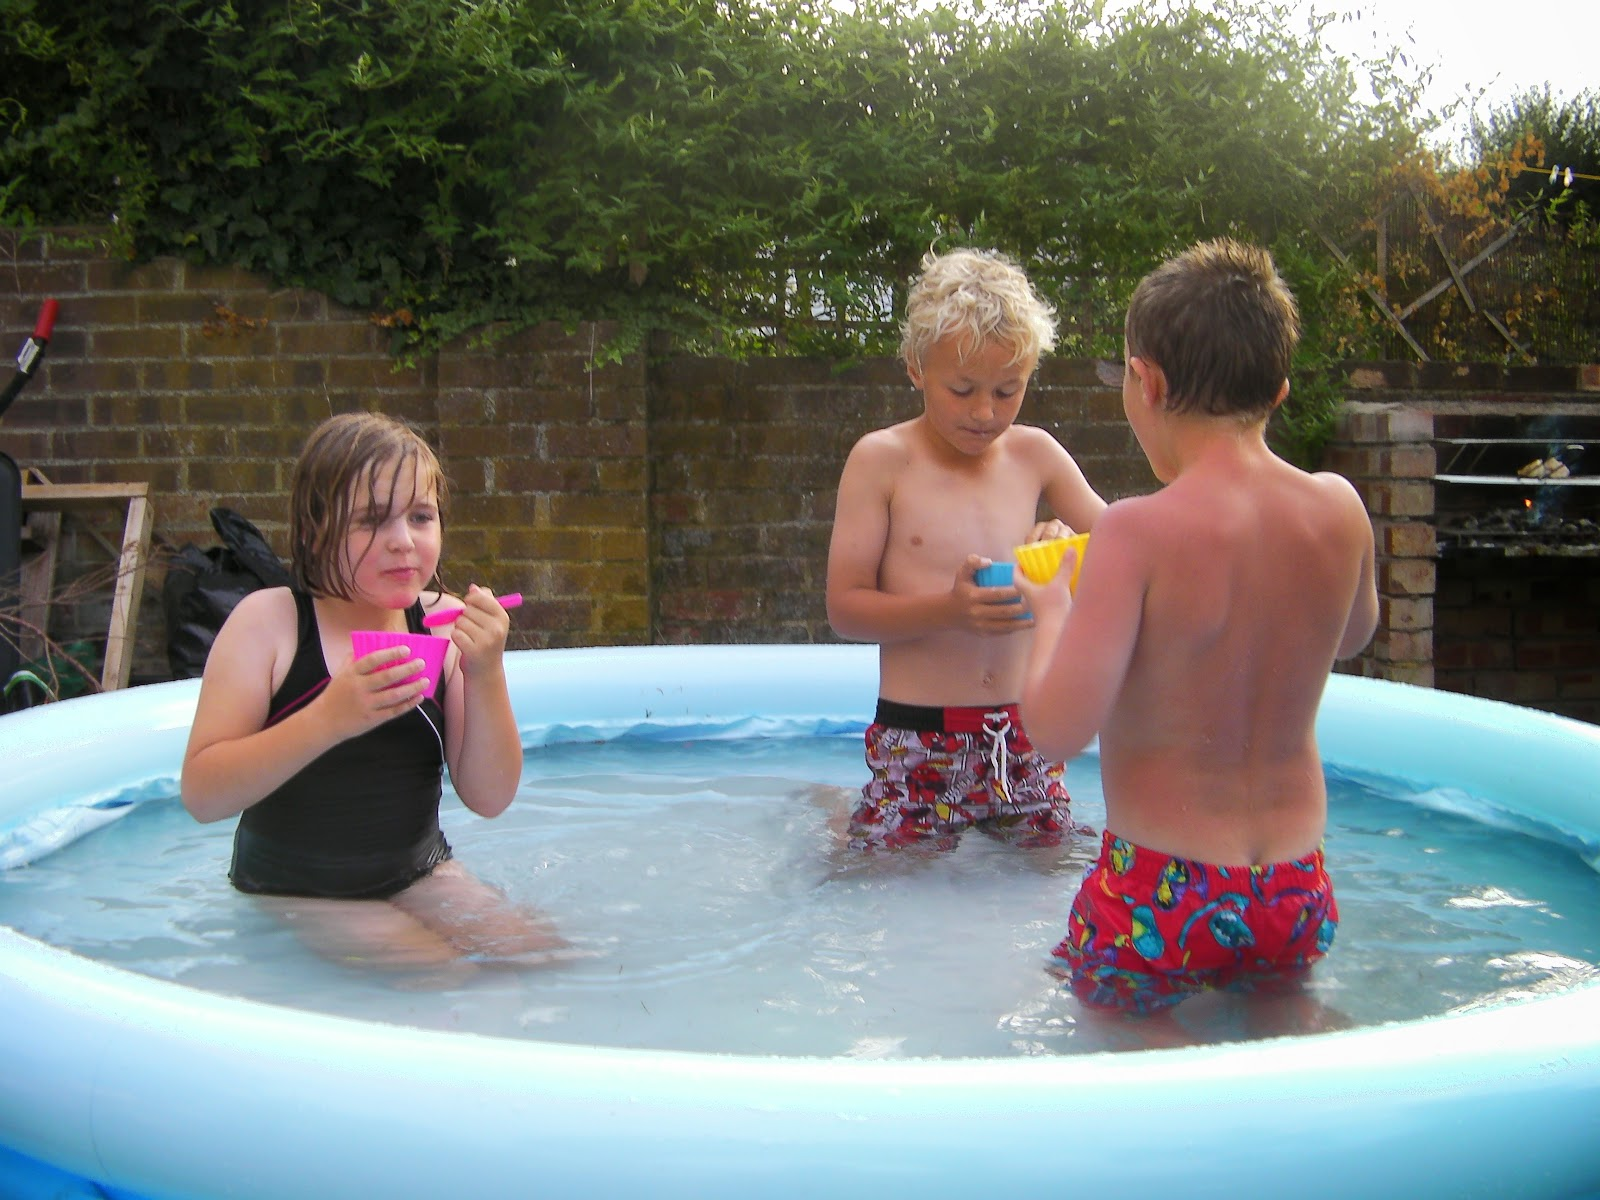 garden party for kids with ice cream and swimming pool